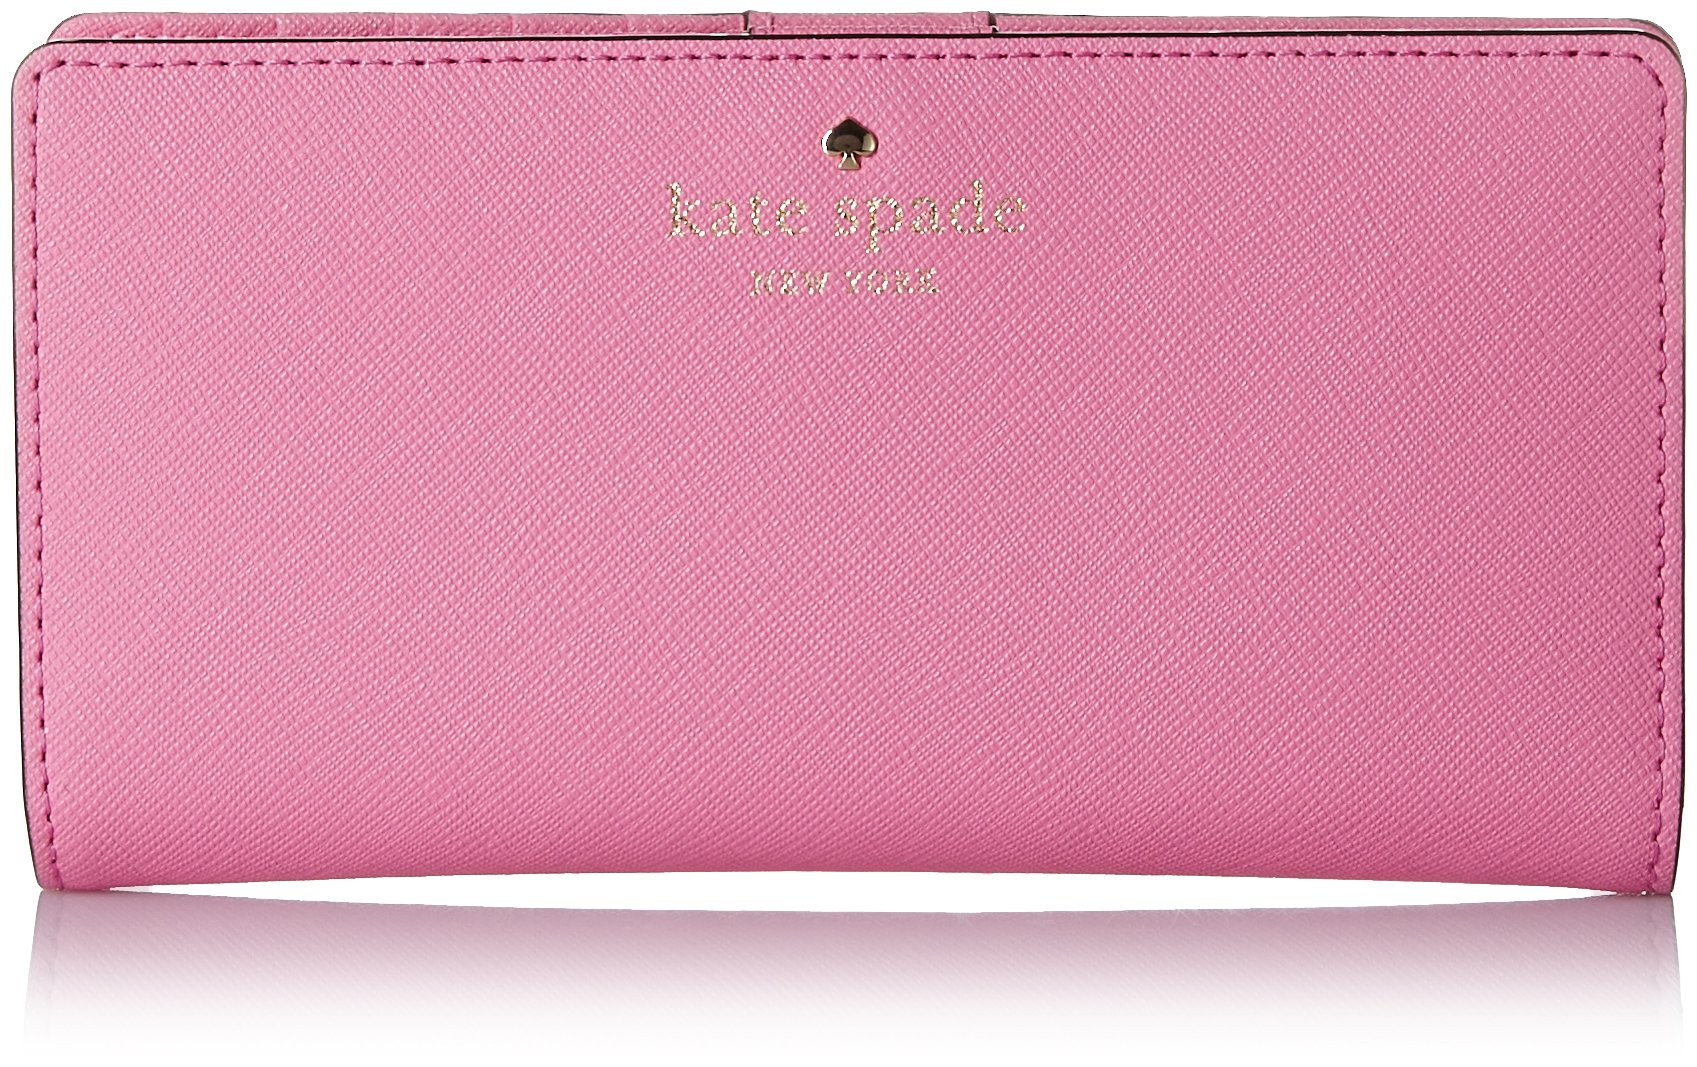 Kate Spade New York Cedar Street Stacy Wallet Rouge Pink by Kate Spade New York